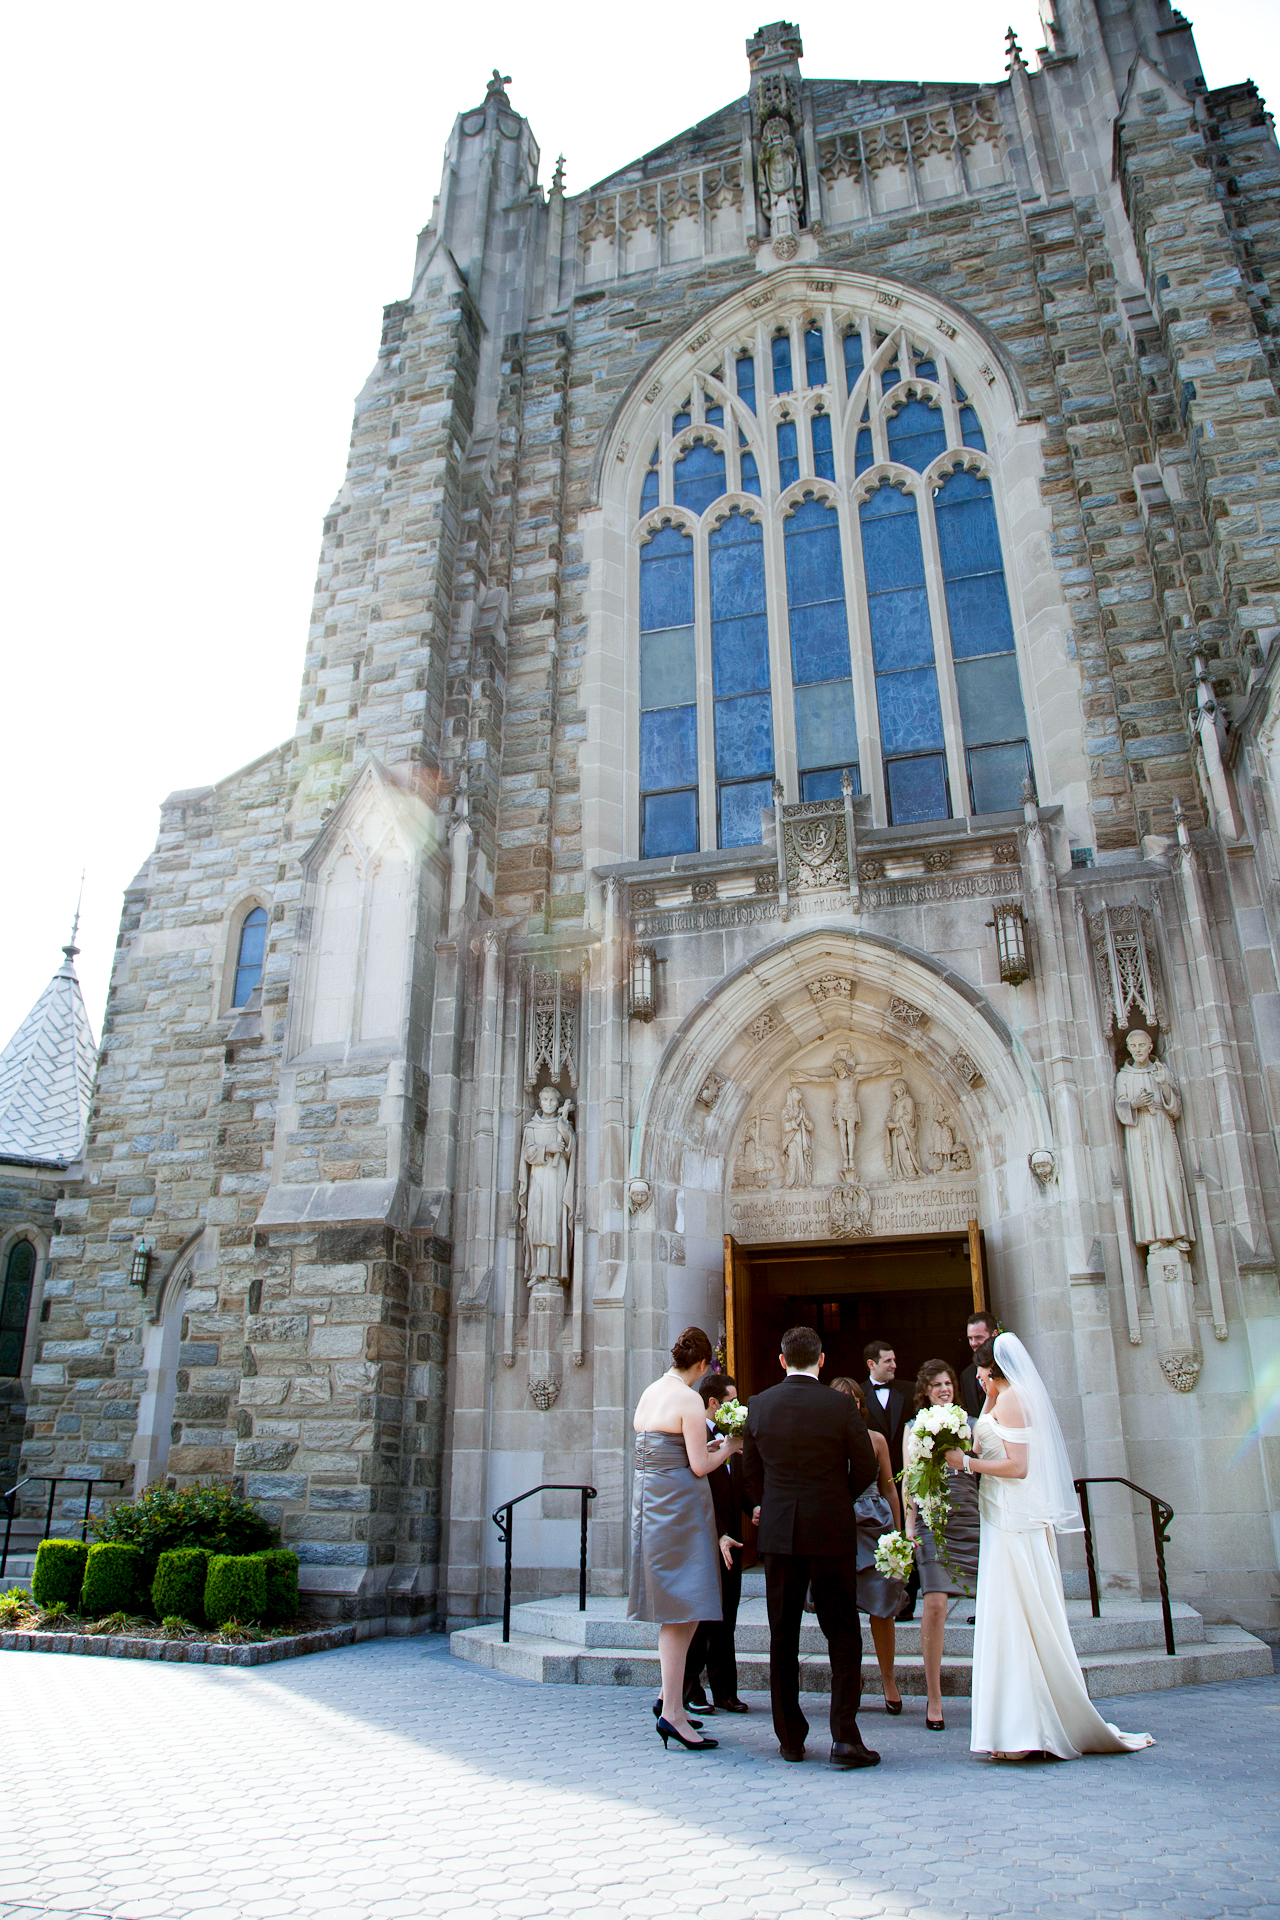 080_CarlyGaebe_SteadfastStudio_WeddingPhotography_Church_NewJersey_Bride_Groom_Bouquet.jpg